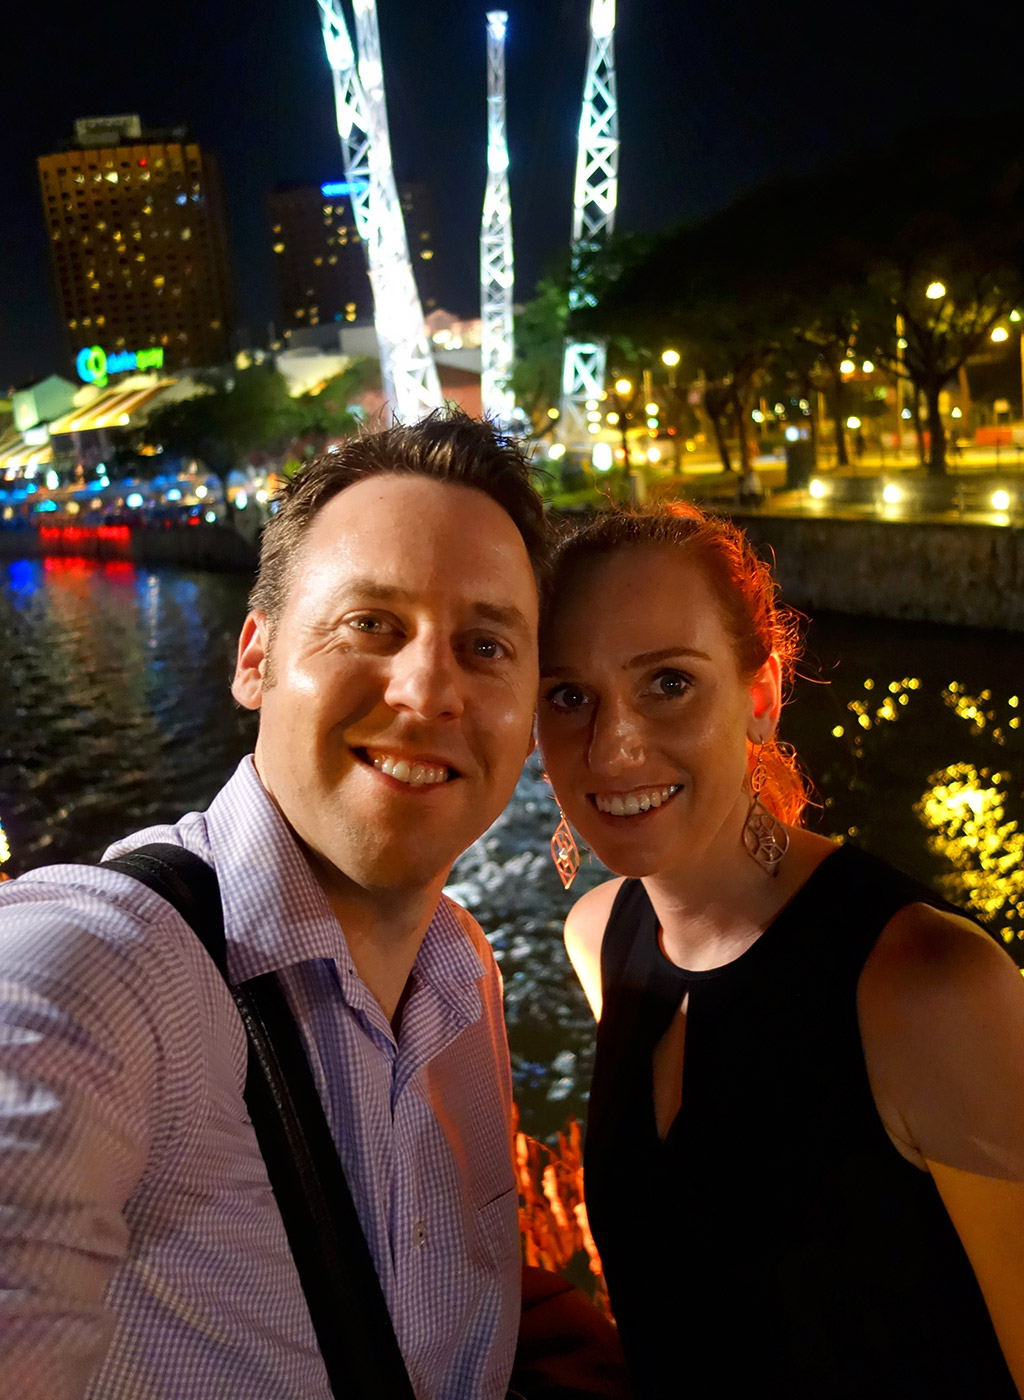 starting-with-a-singapore-clarke-quay-night-2